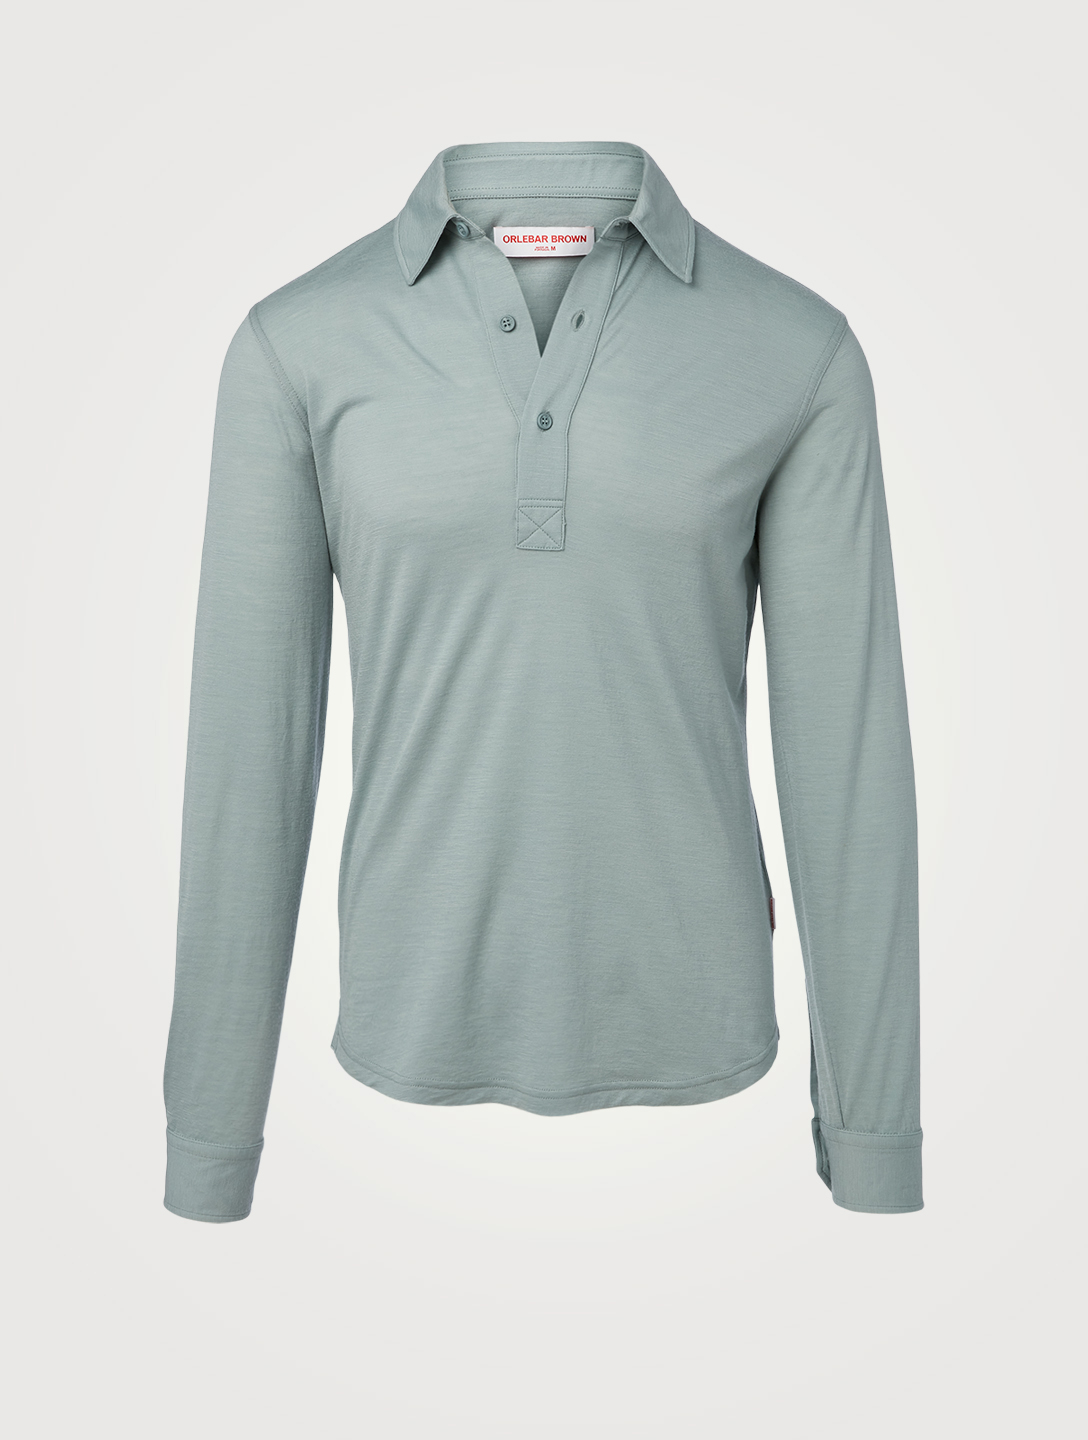 ORLEBAR BROWN Sebastian Wool Long-Sleeve Polo Shirt Men's Grey